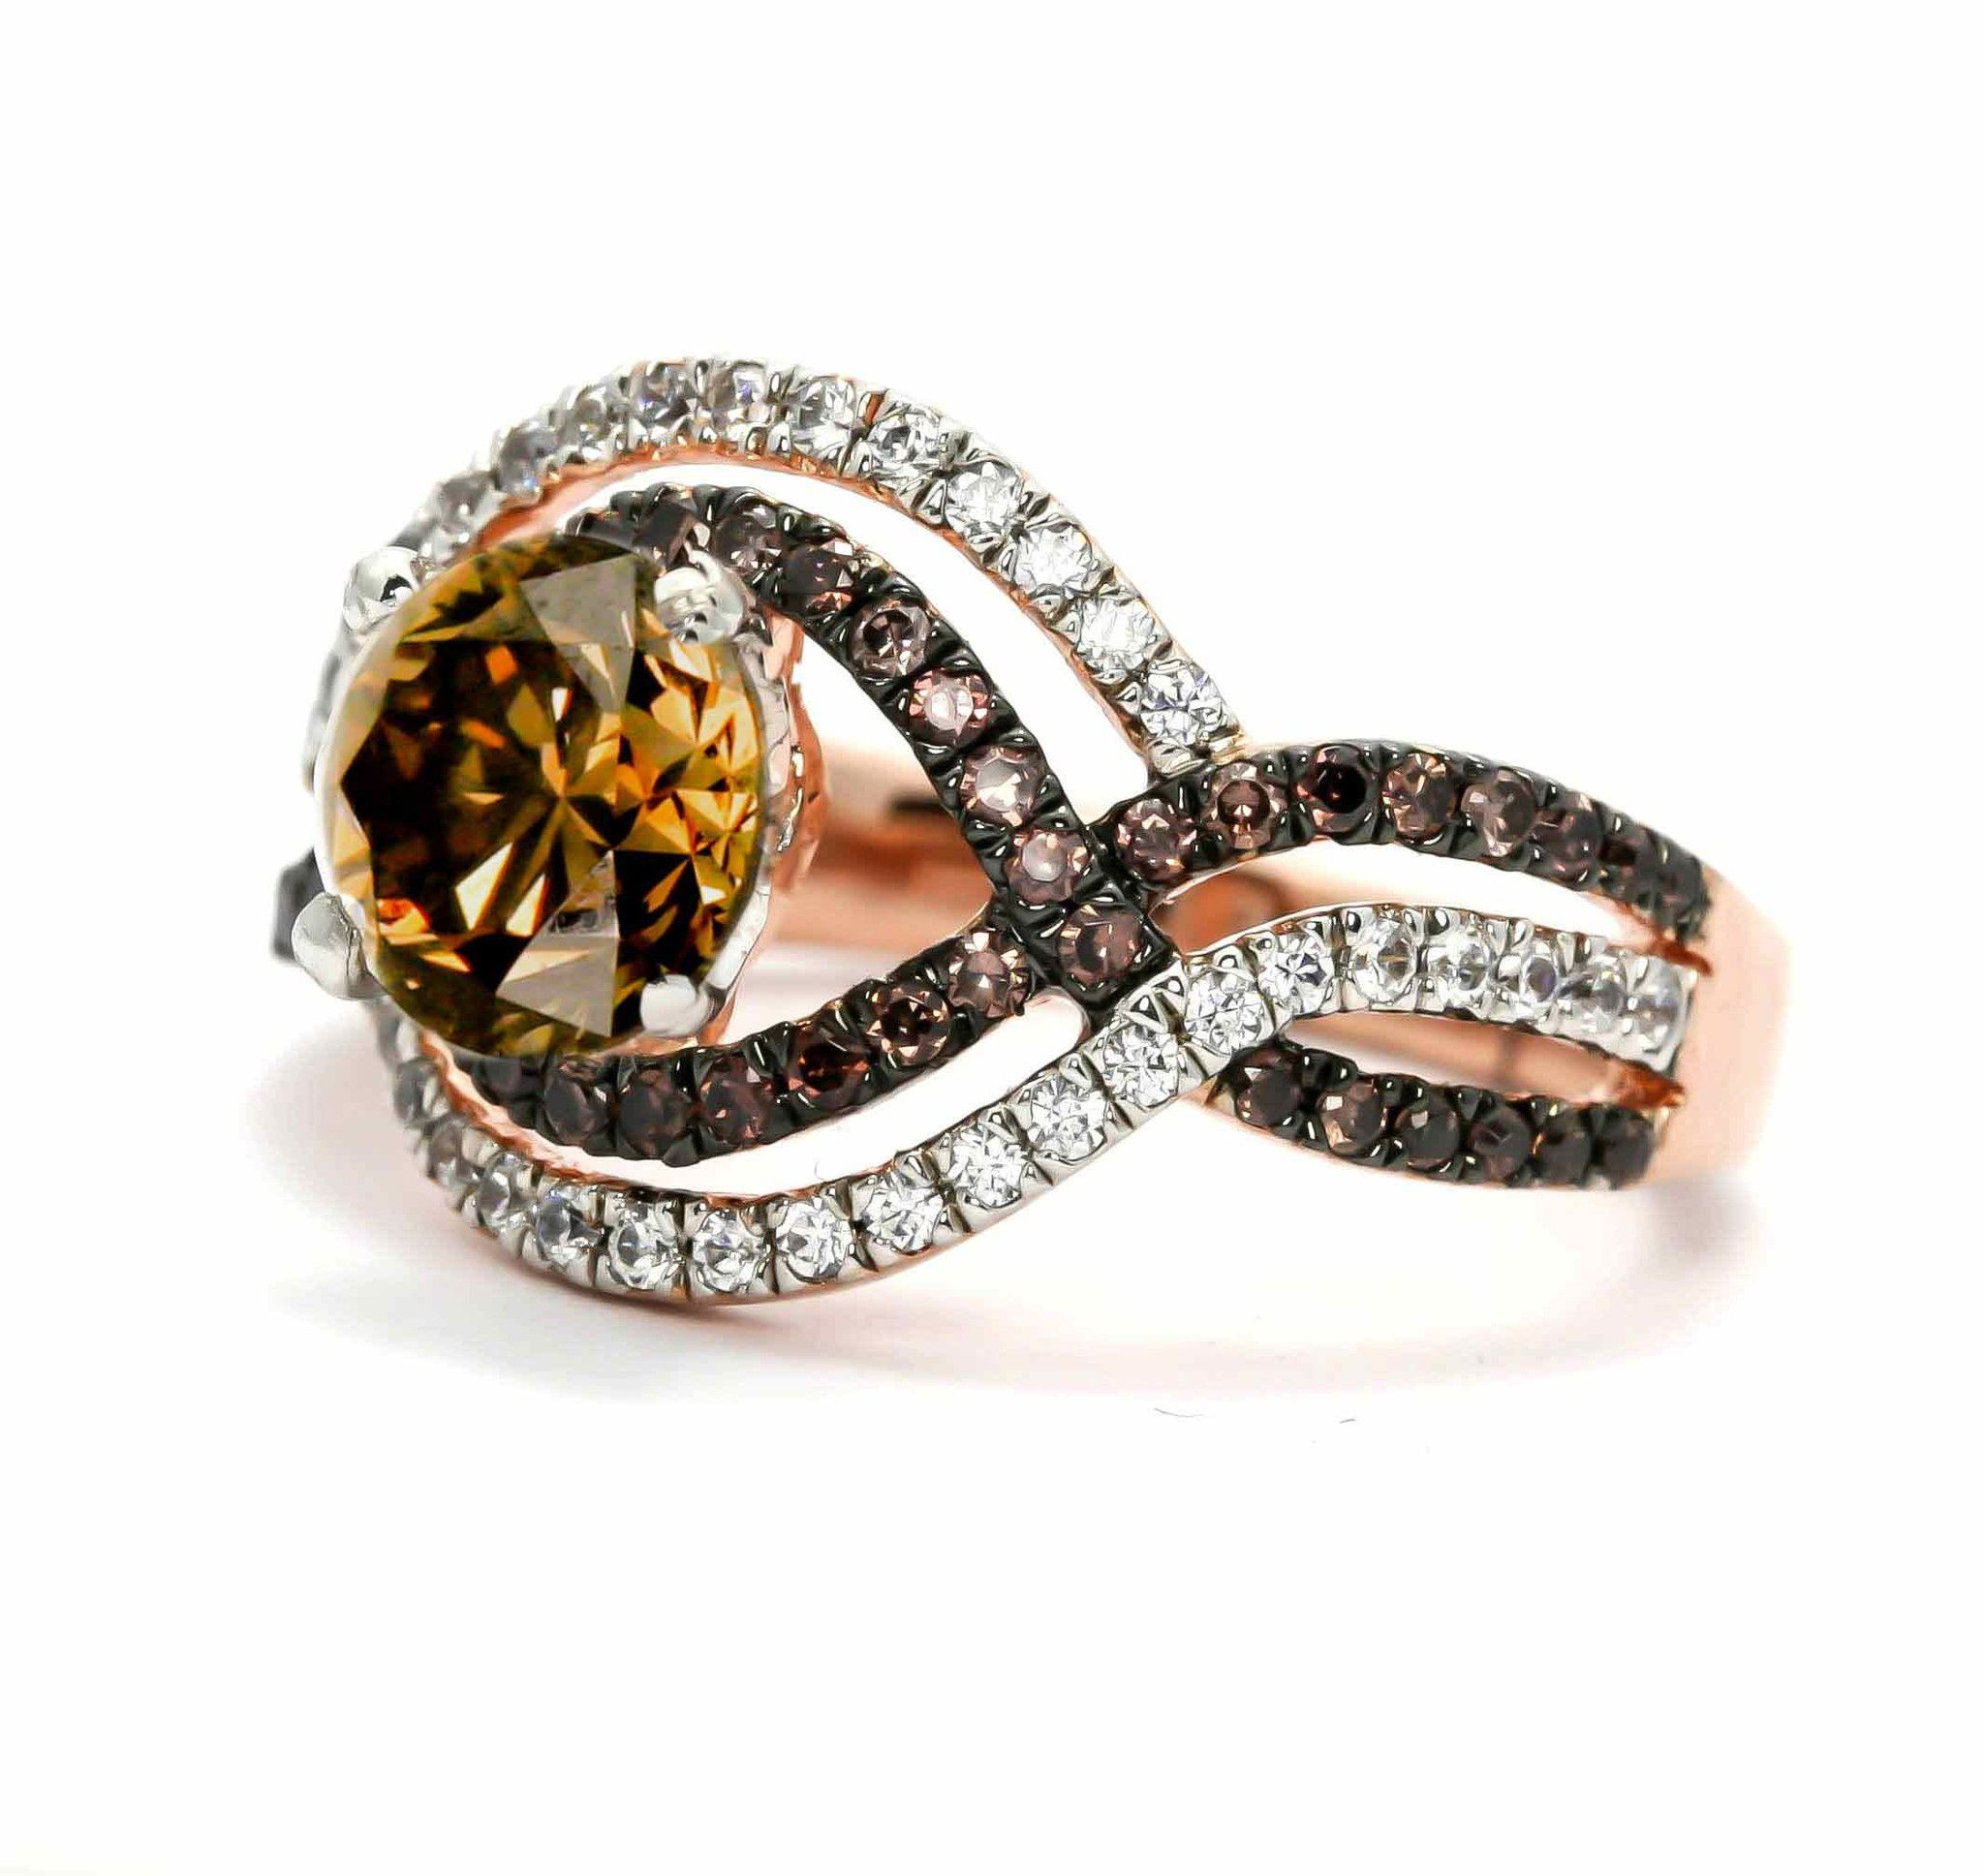 Unique Halo Infinity 1 Carat Chocolate Brown Smoky Quartz Engagement Ring  With Rose Gold, White